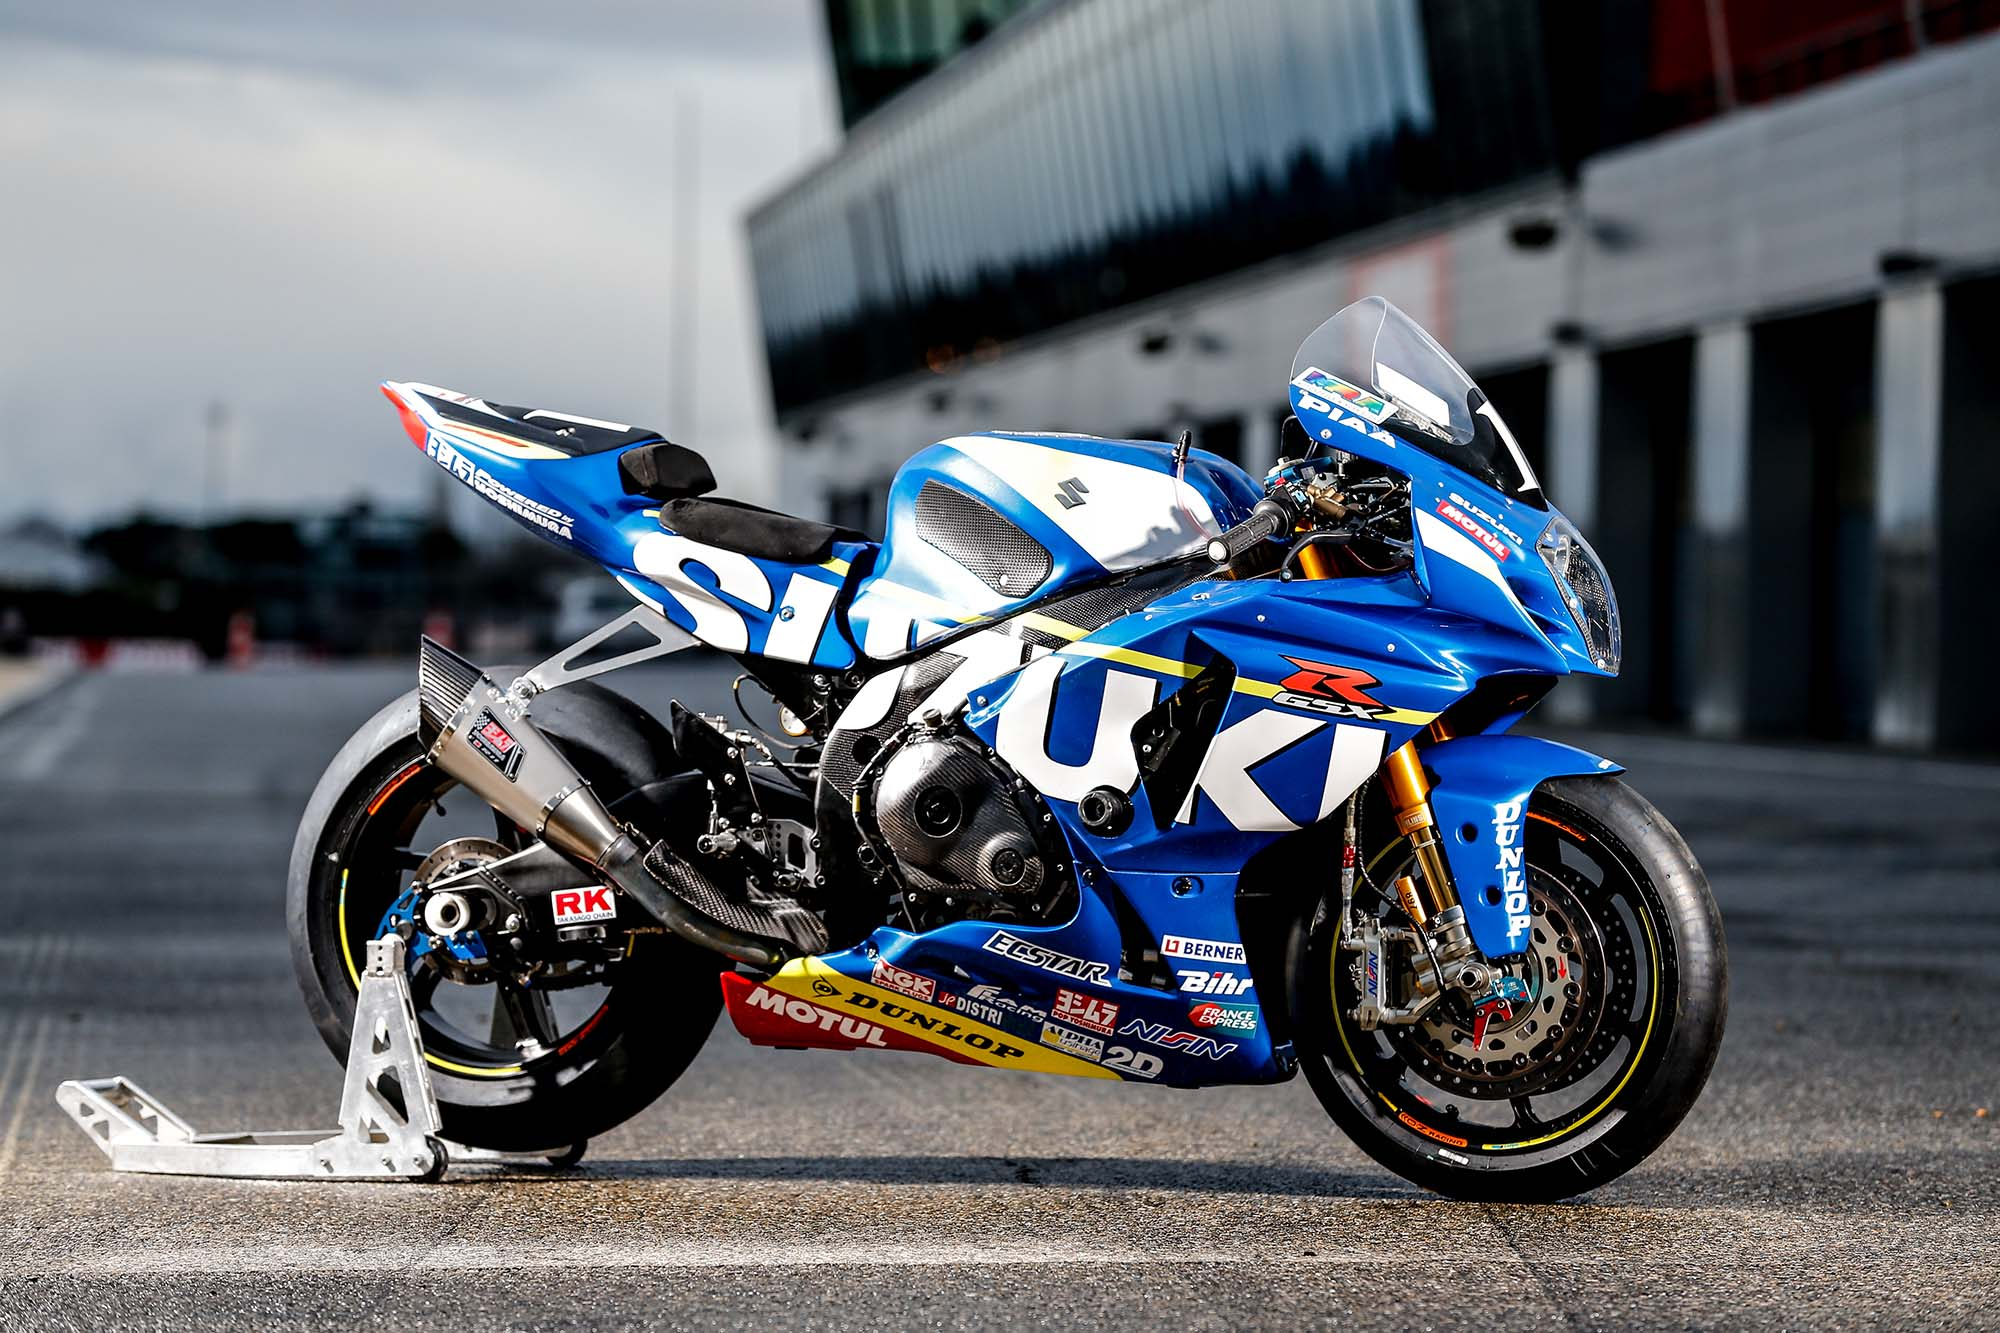 ... FIM Endurance World Championship is kicking off in Le Mans, France